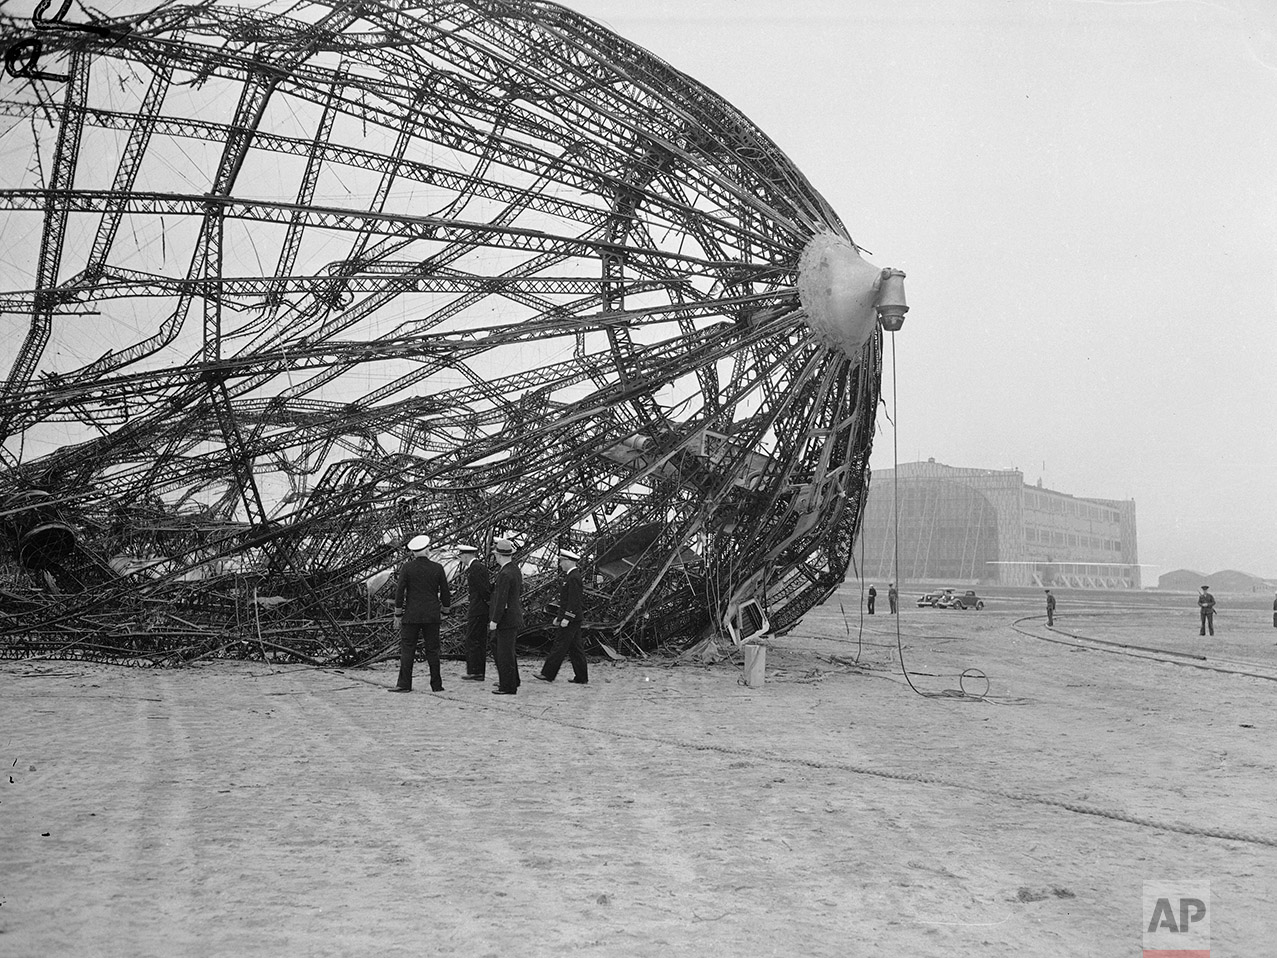 Members of the U.S. Navy Board of Inquiry inspect the wreckage of the German zeppelin Hindenburg on the field of the Lakehurst Naval Air Station in New Jersey, May 8, 1937.  The Hindenburg exploded after morning on May 6, killing 36 people.  (AP Photo)